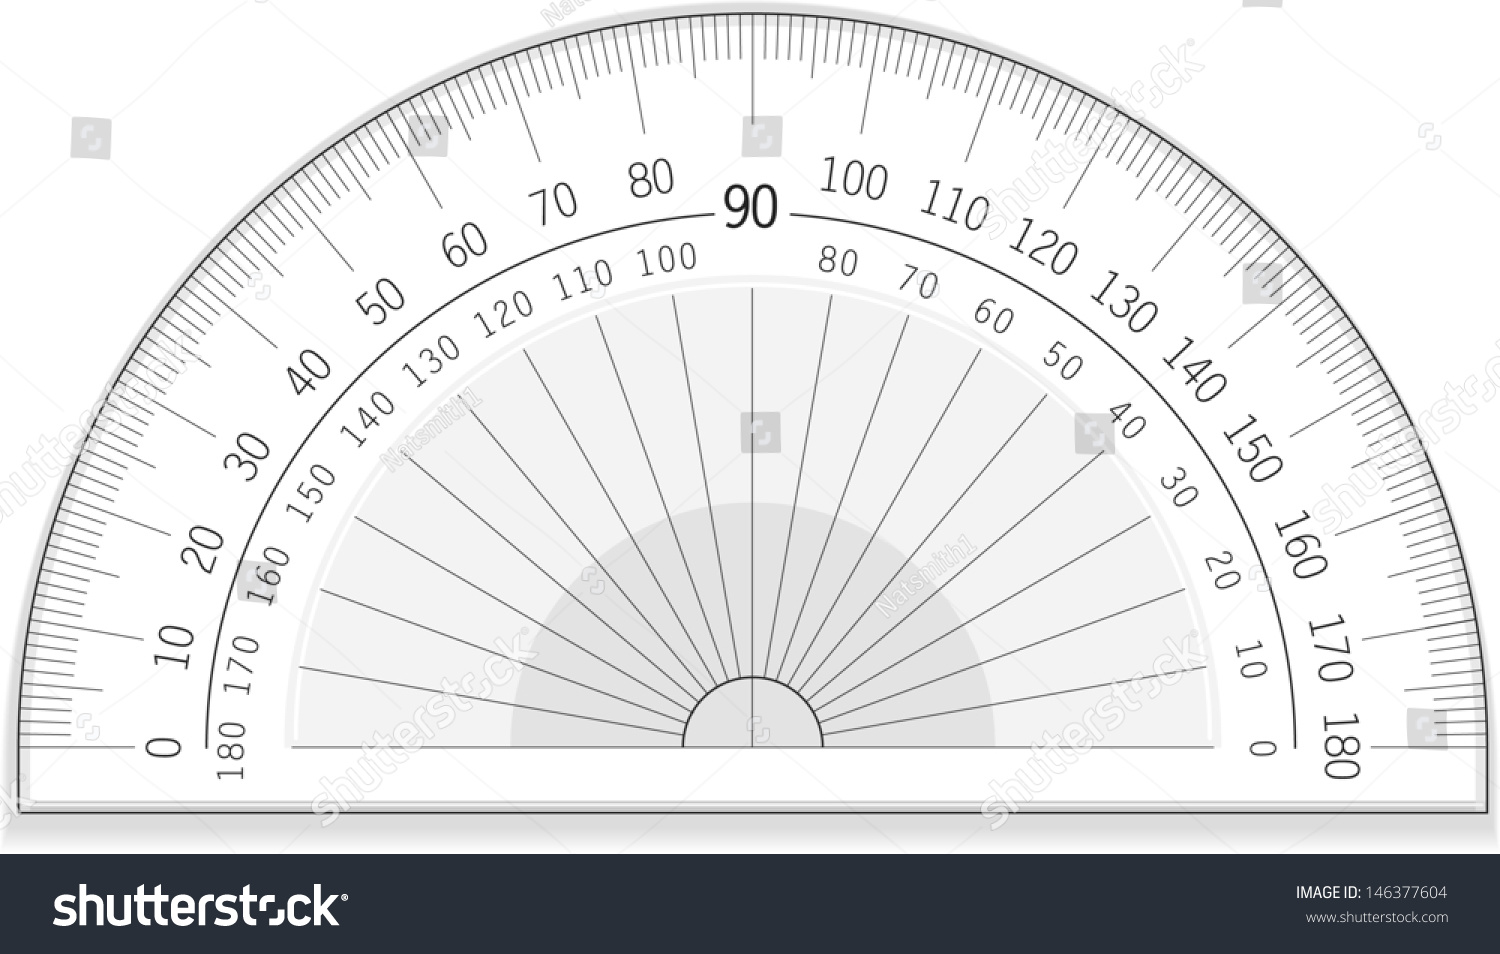 worksheet Protractor Image vector drawing accurate protractorprotractorgreat useable file of an protractor